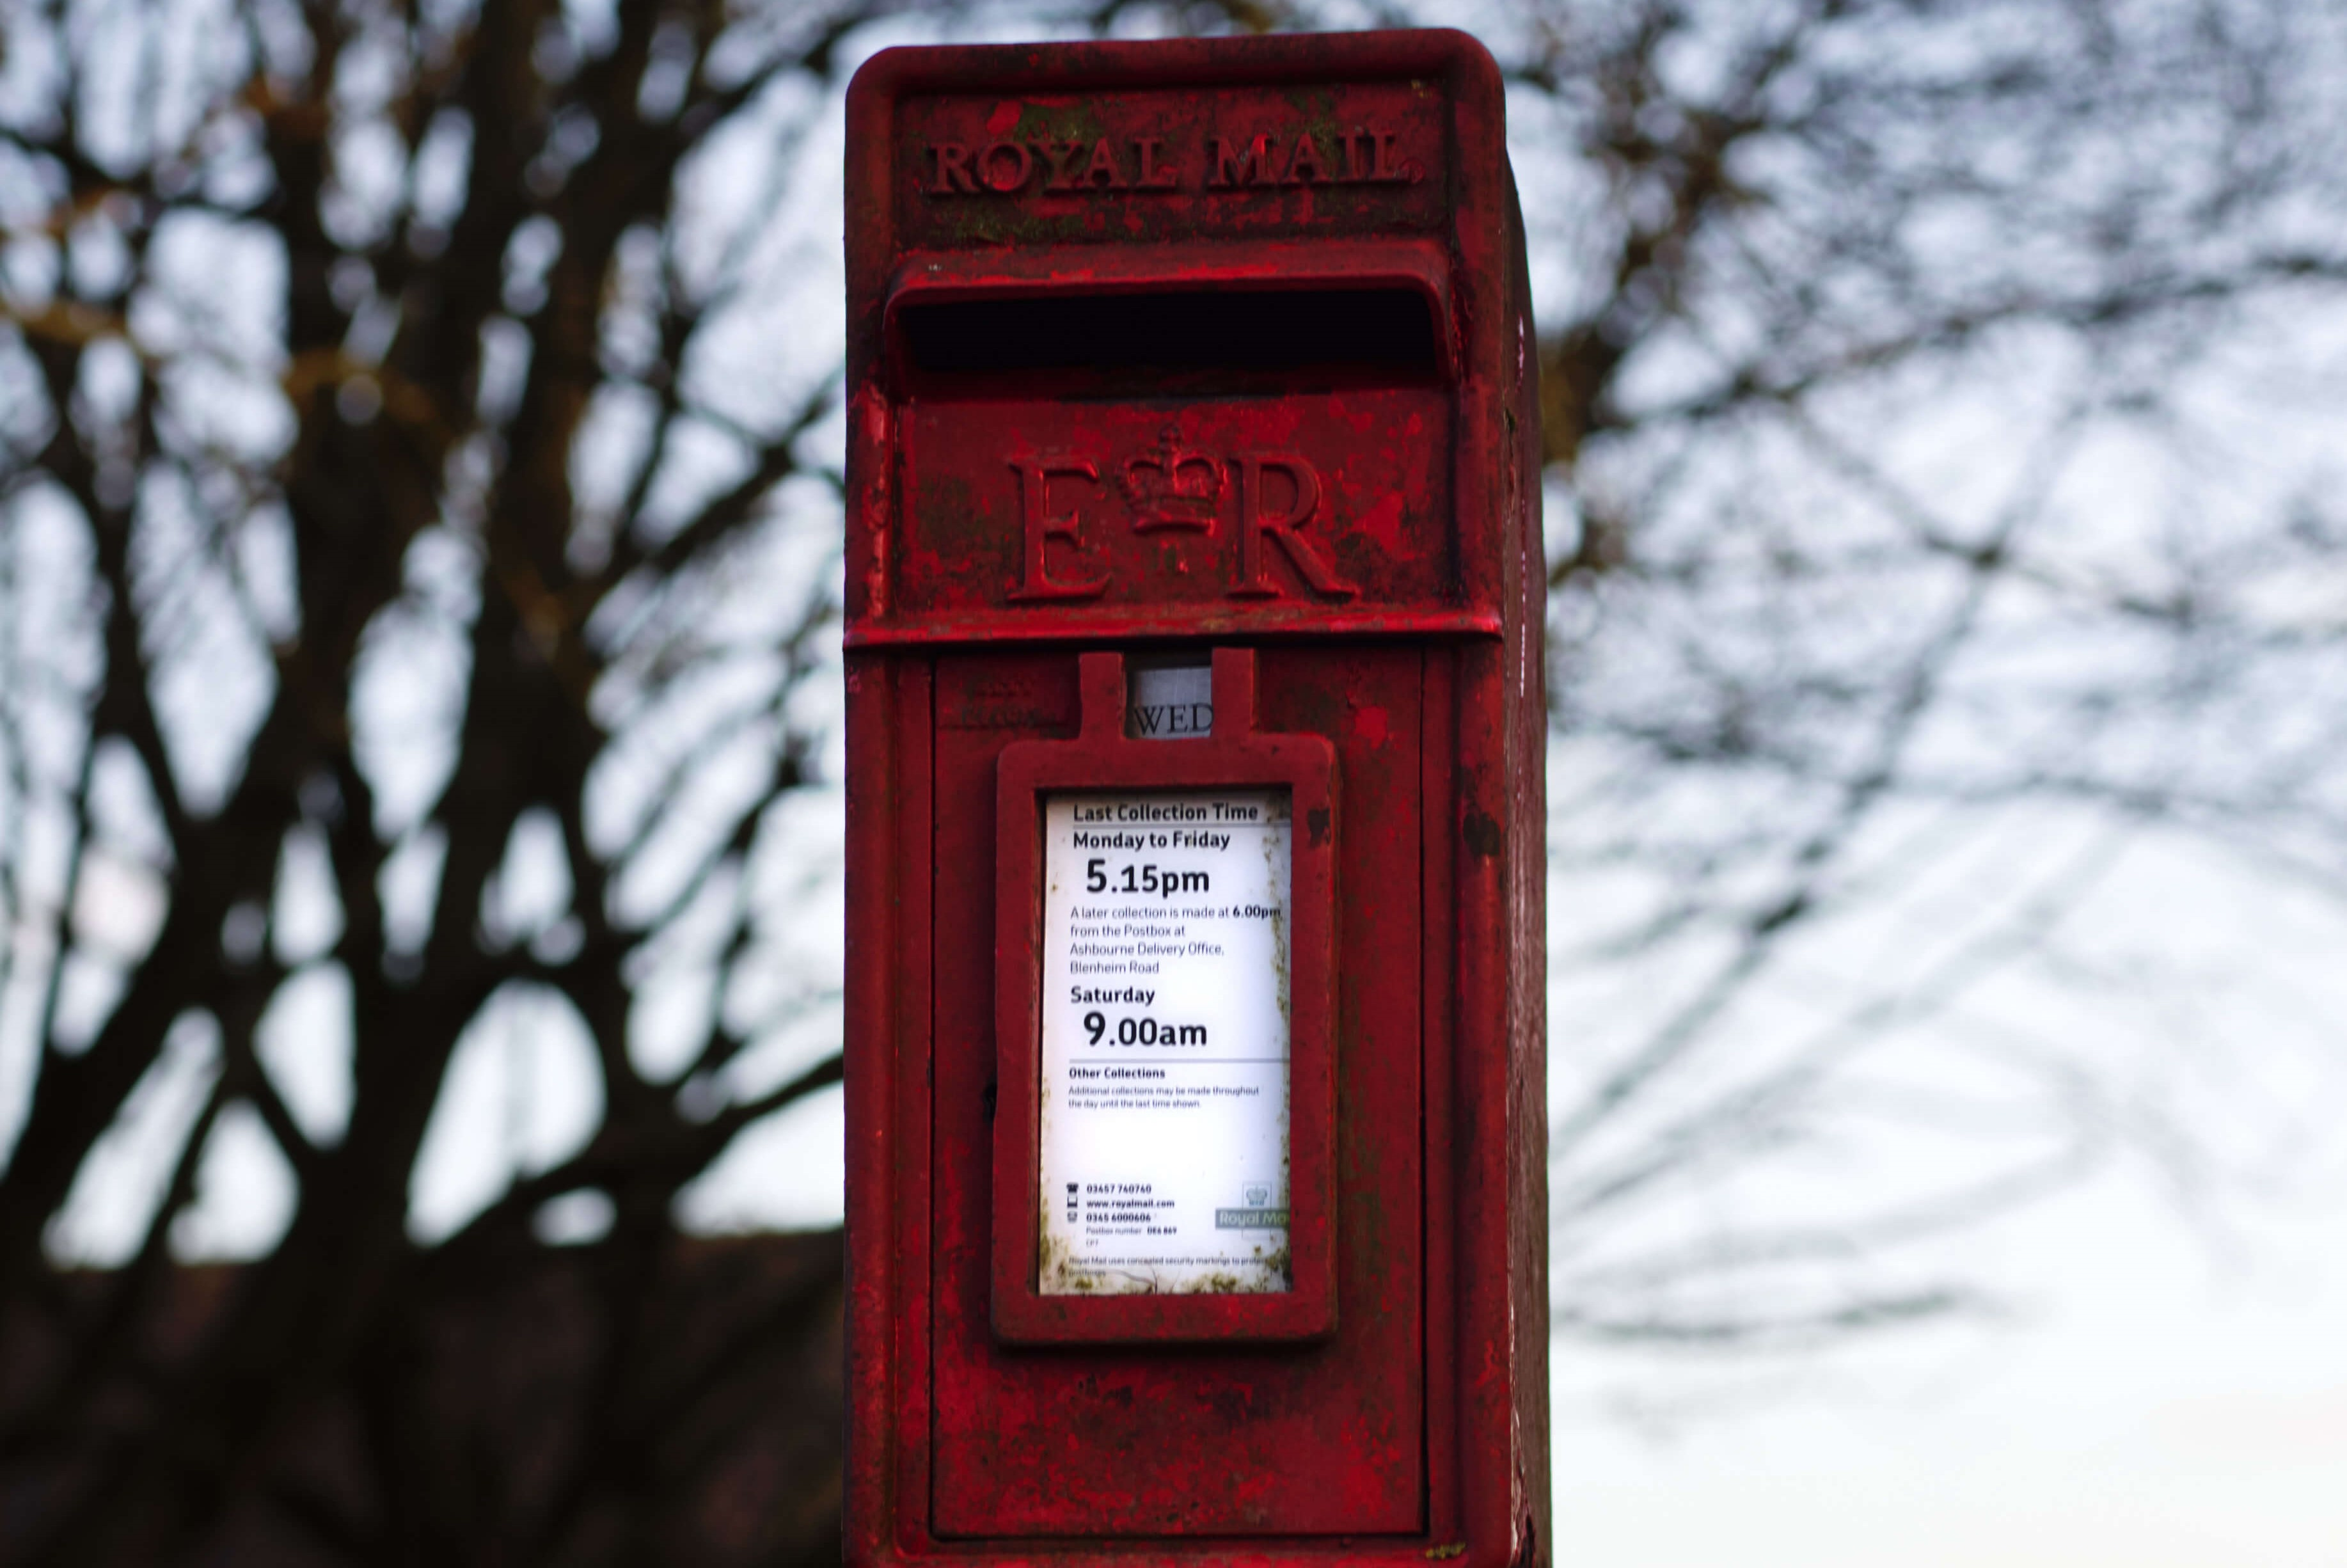 Postbox by Hilltop School